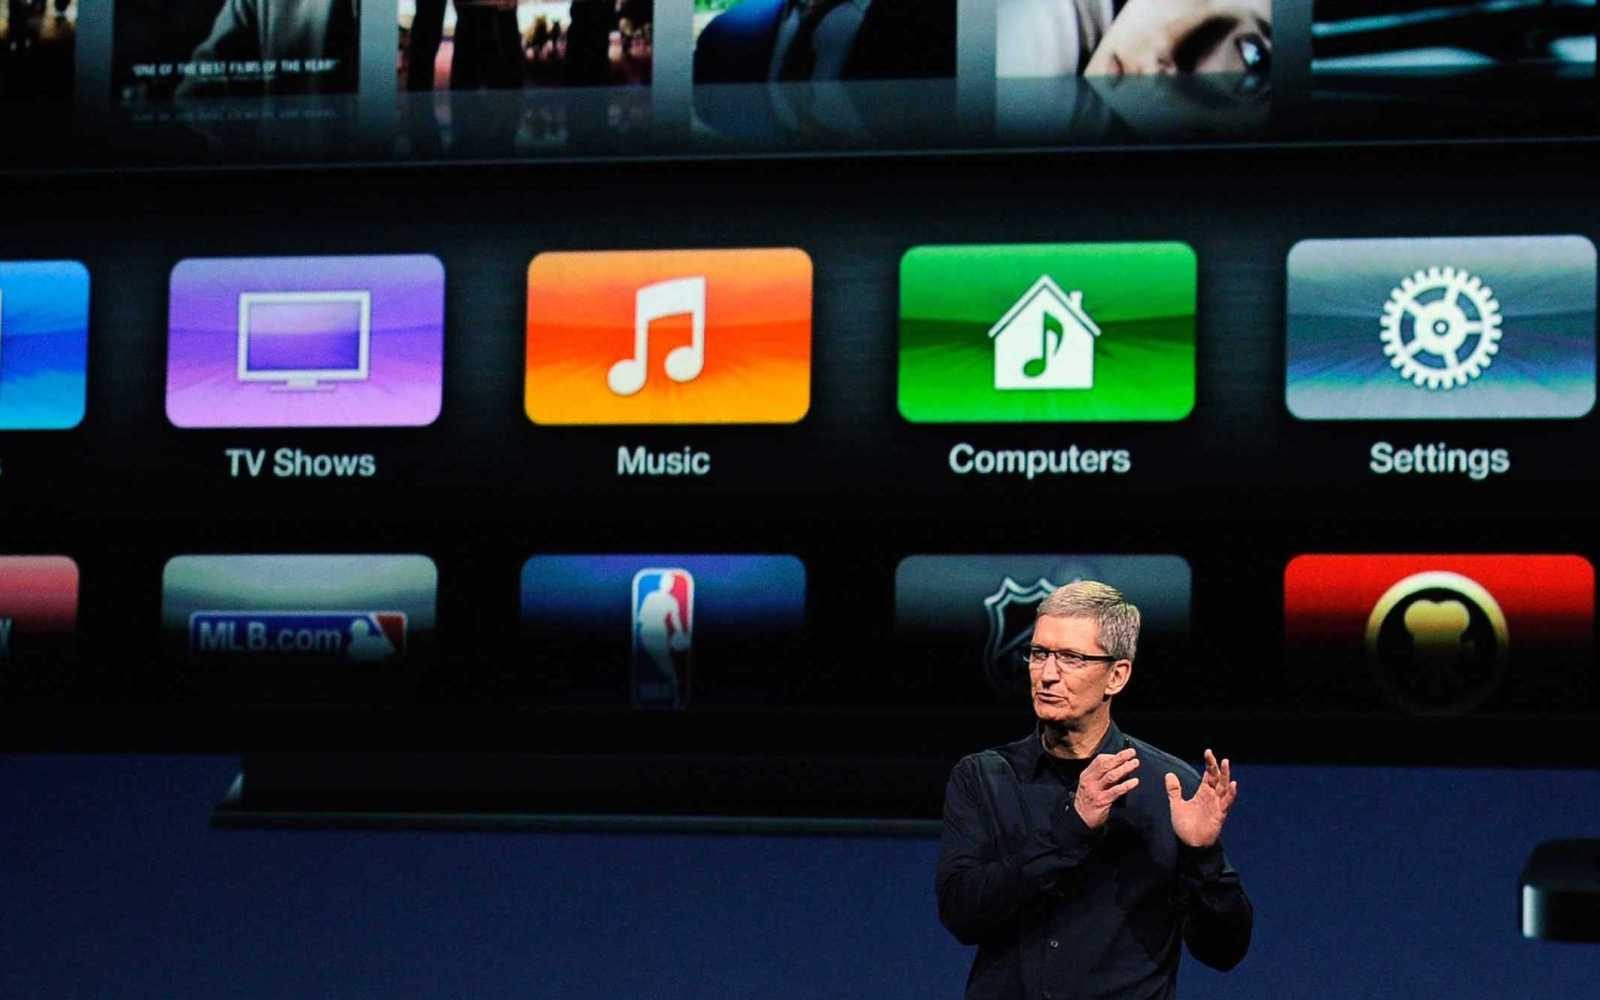 What will September's new iOS 9-based Apple TV bring to the living room?